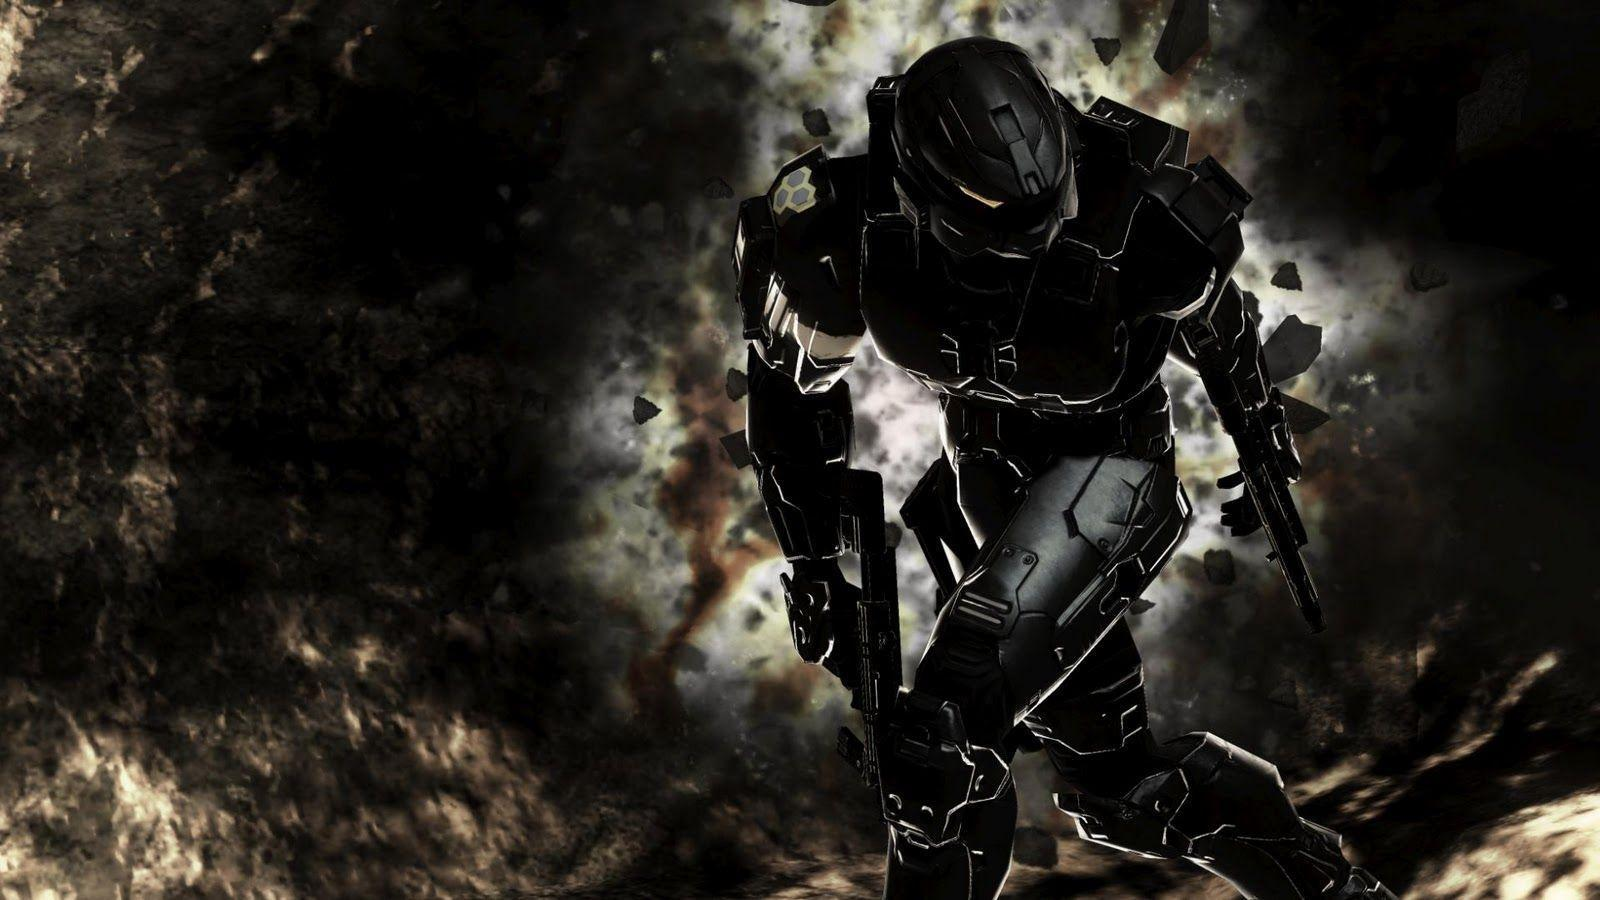 wallpaper free game halo - photo #15